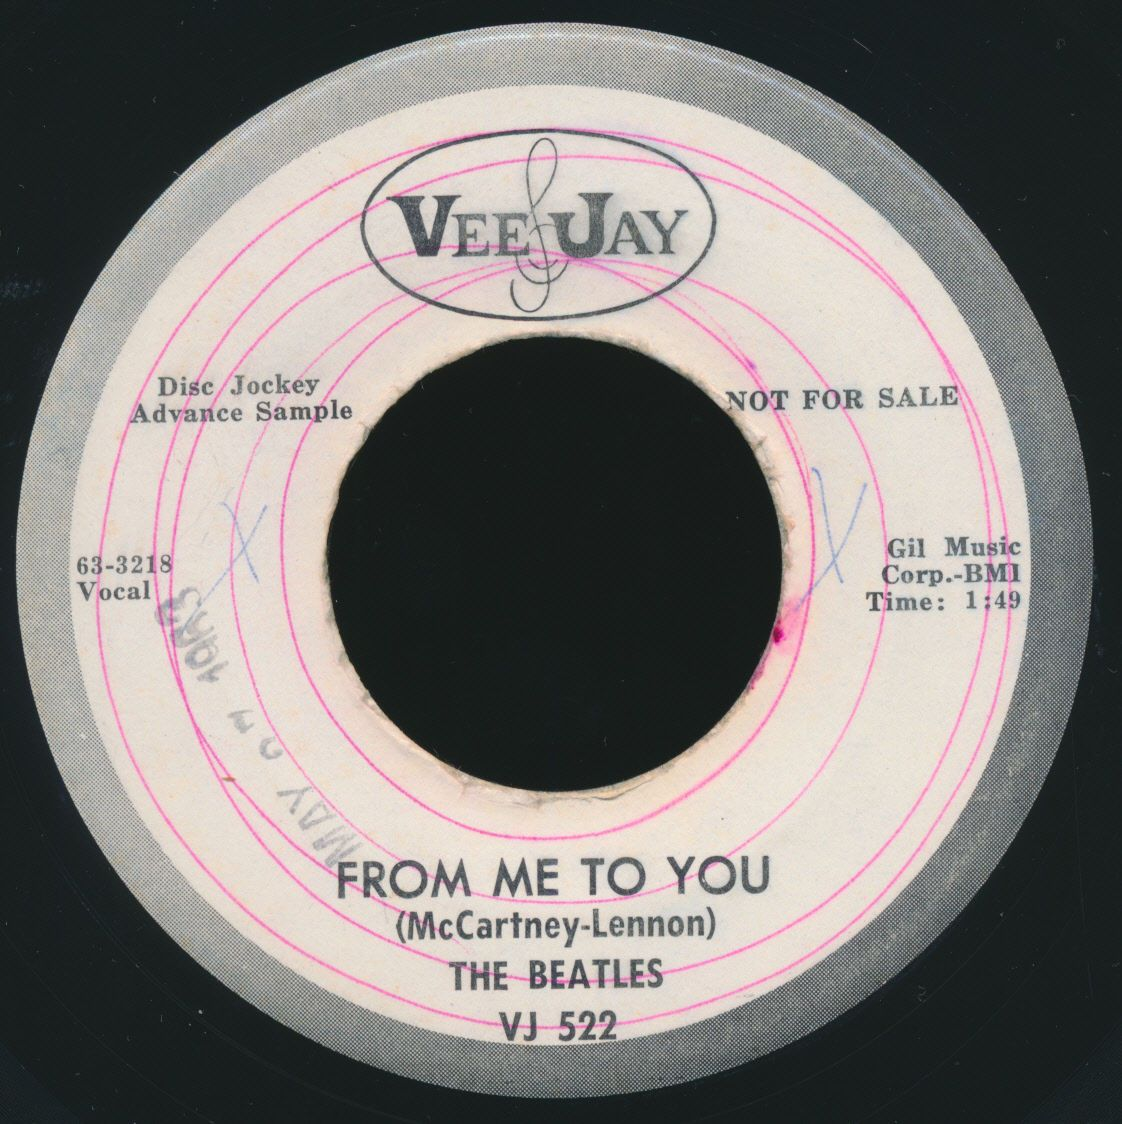 Beatles HISTORIC MID 1963 VEE JAY 522 ' FROM ME TO YOU ' PROMO ISSUE 45!  https://t.co/K69pBobrDp https://t.co/DbH2M2ZsaC